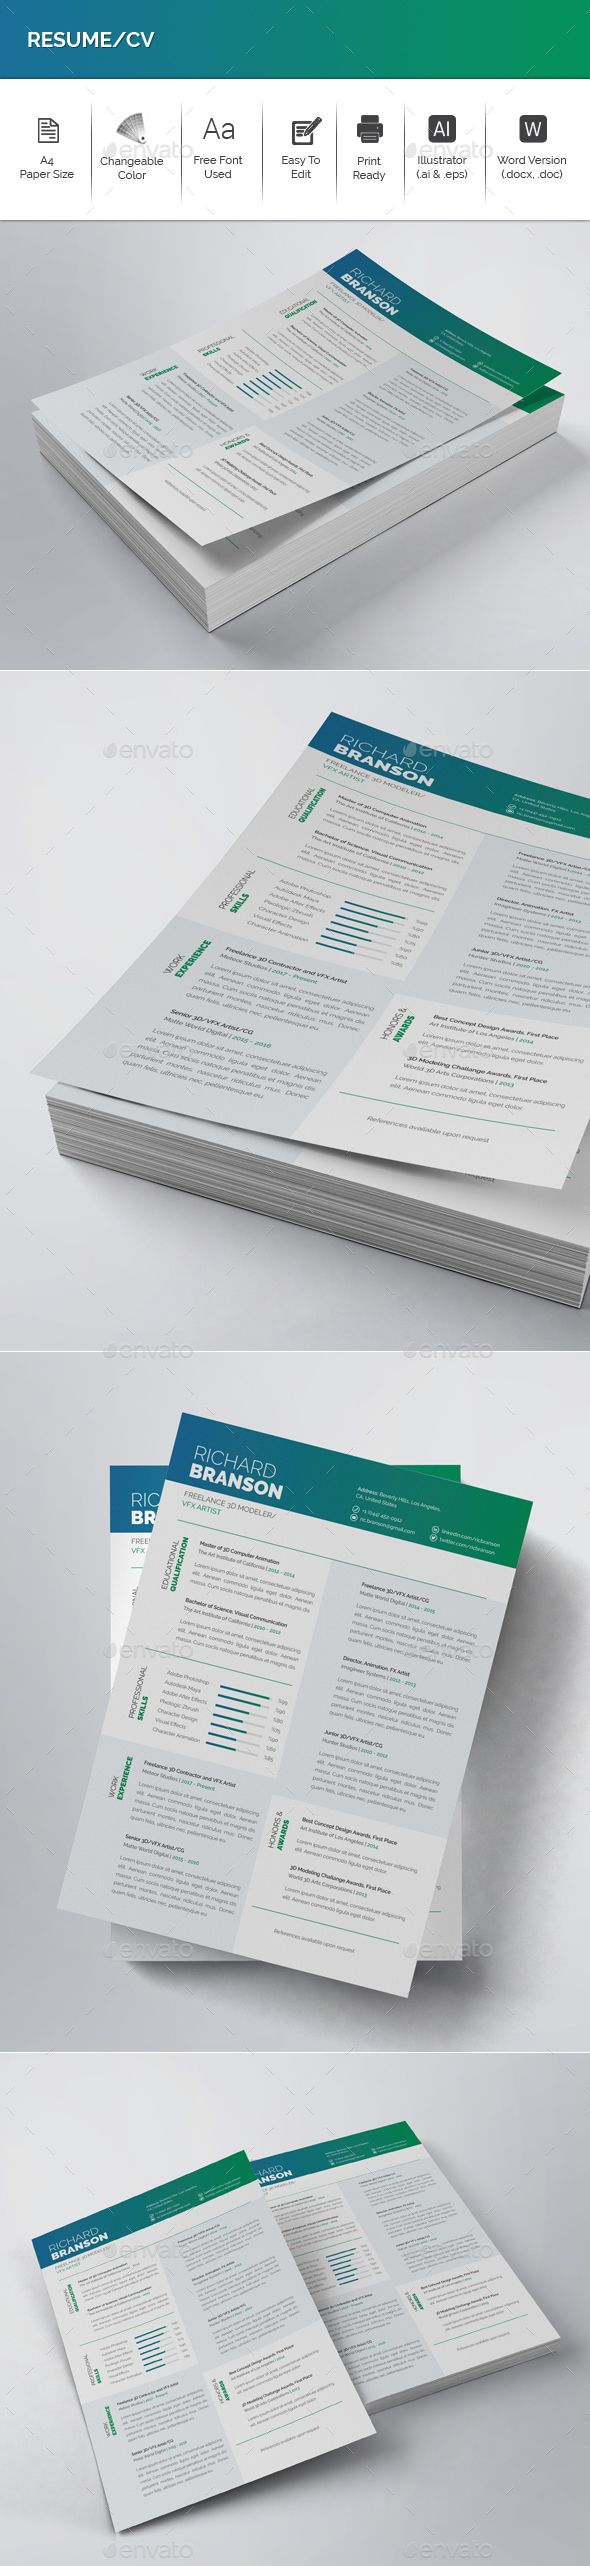 Resume Cv Templates Free Download%0A medical administrative assistant resume objective